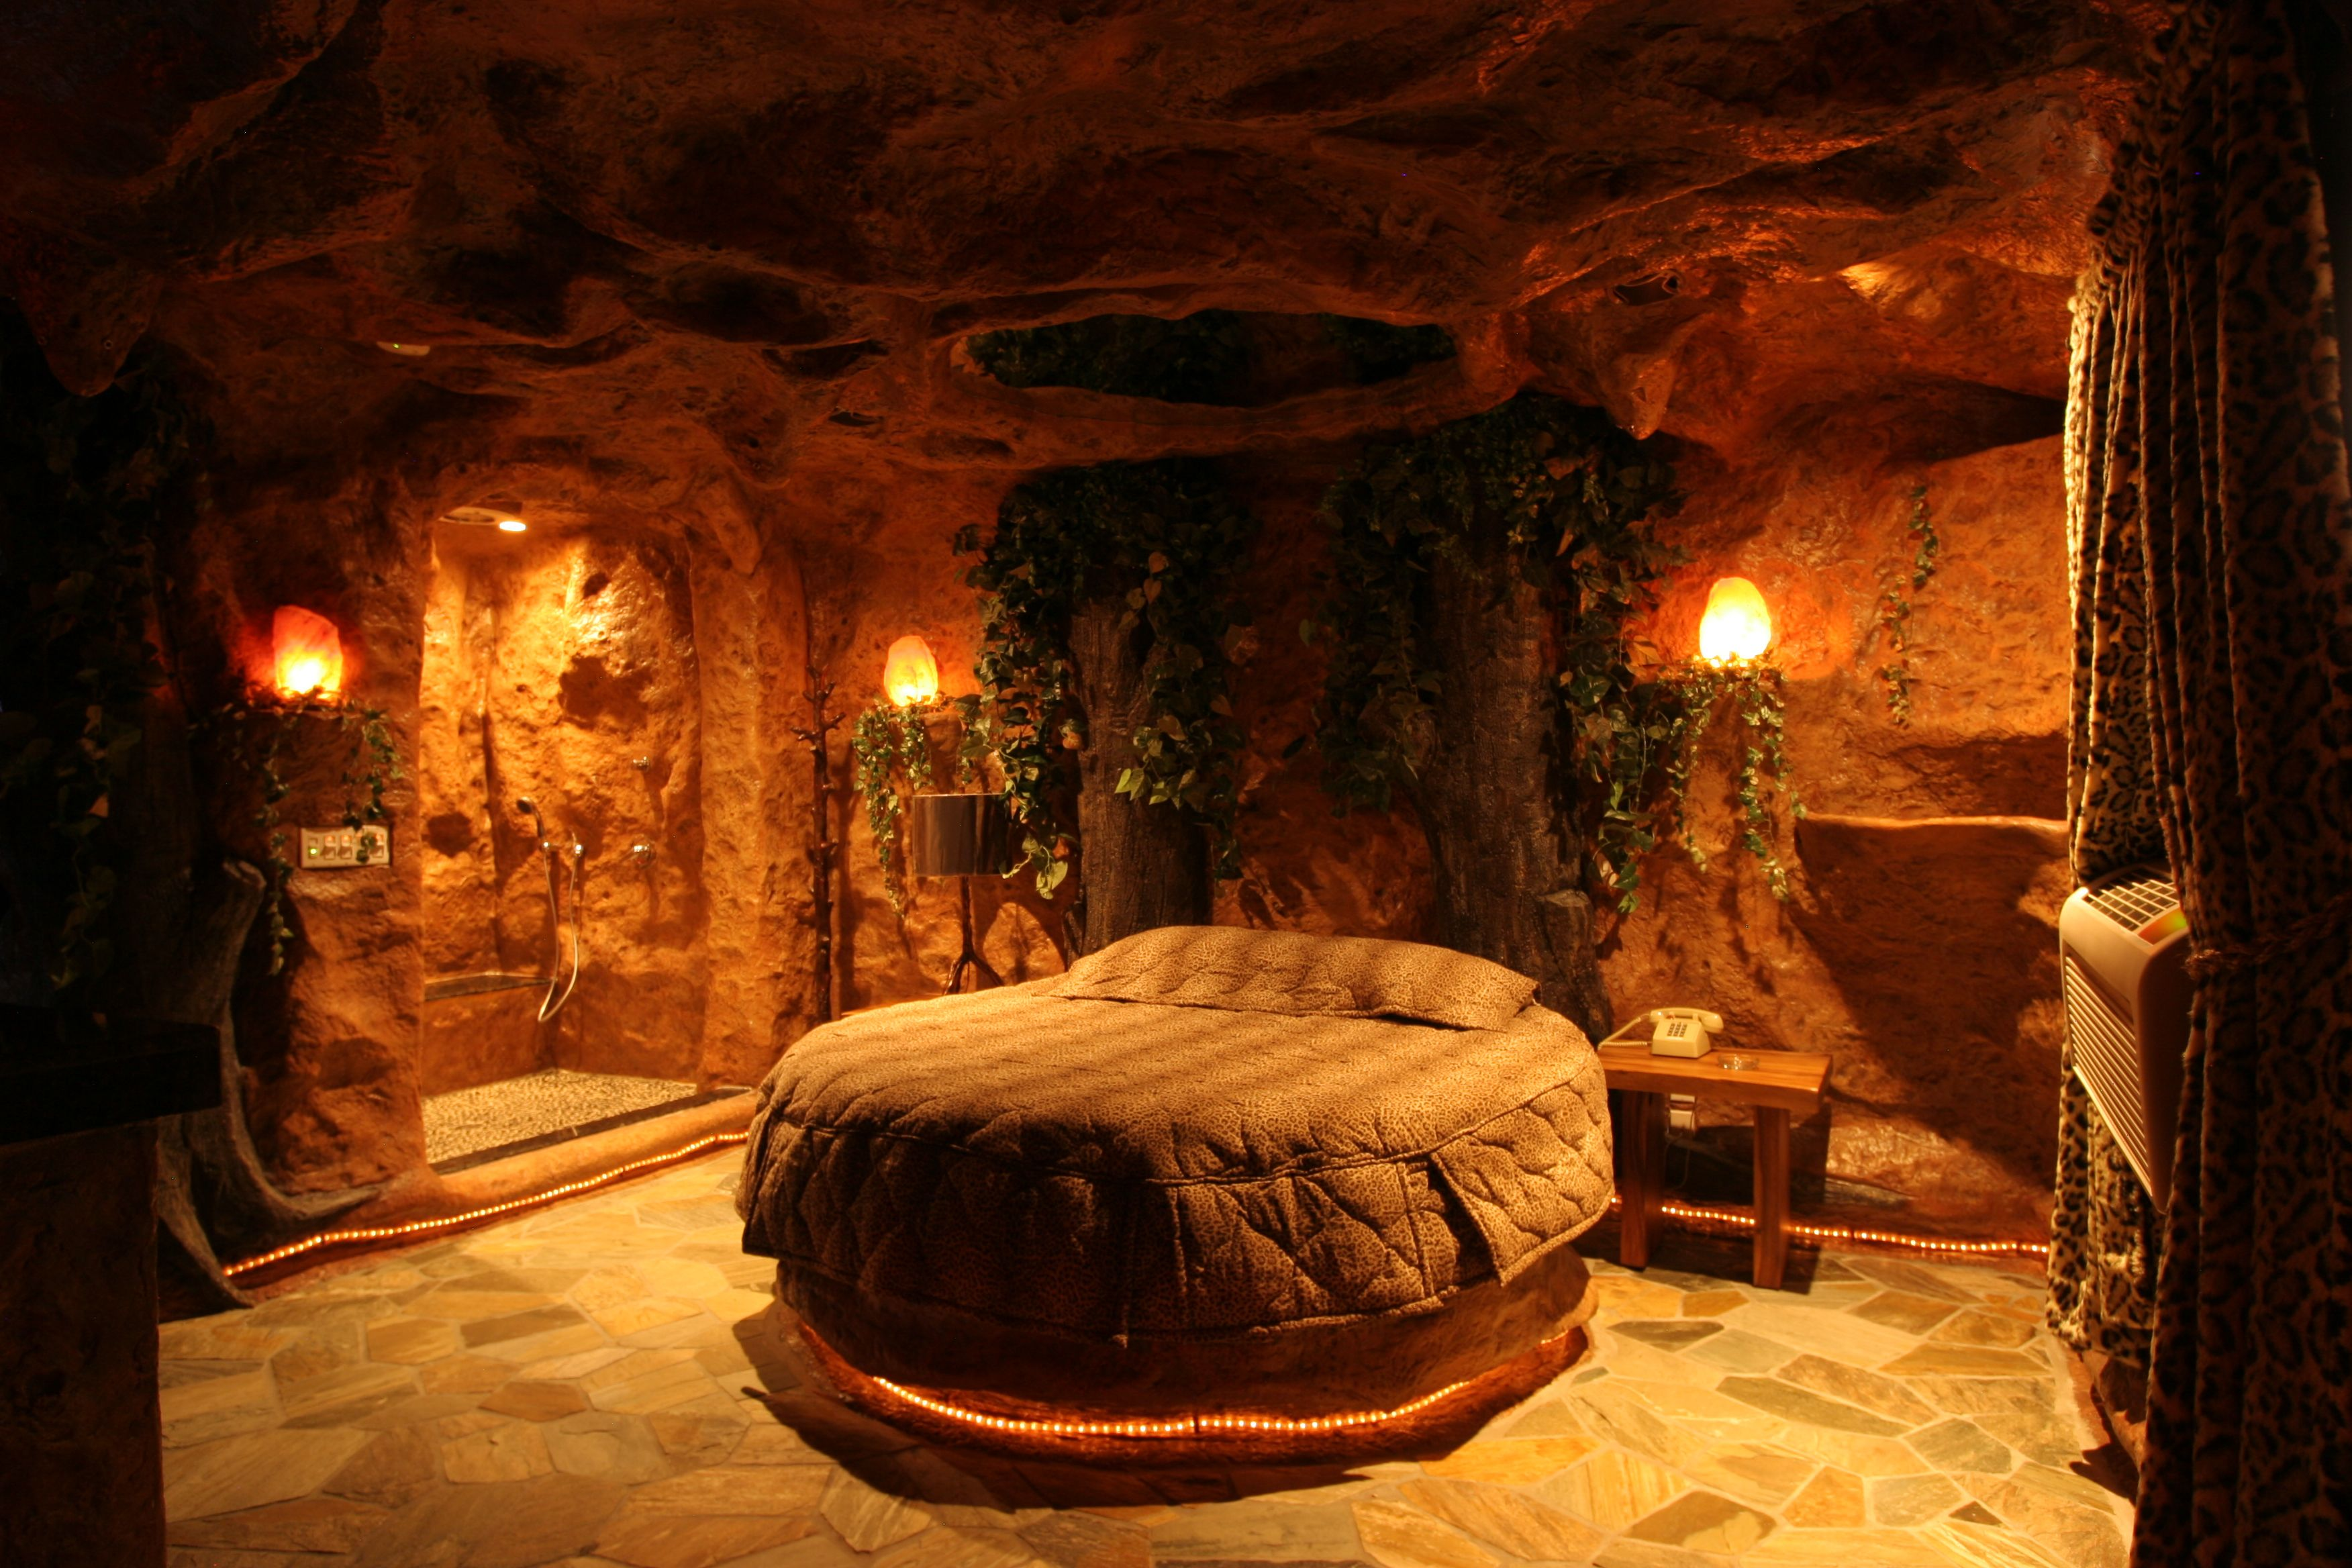 A Tour Of The Cave Room Fantasy Hotel Themed Hotel Rooms Space